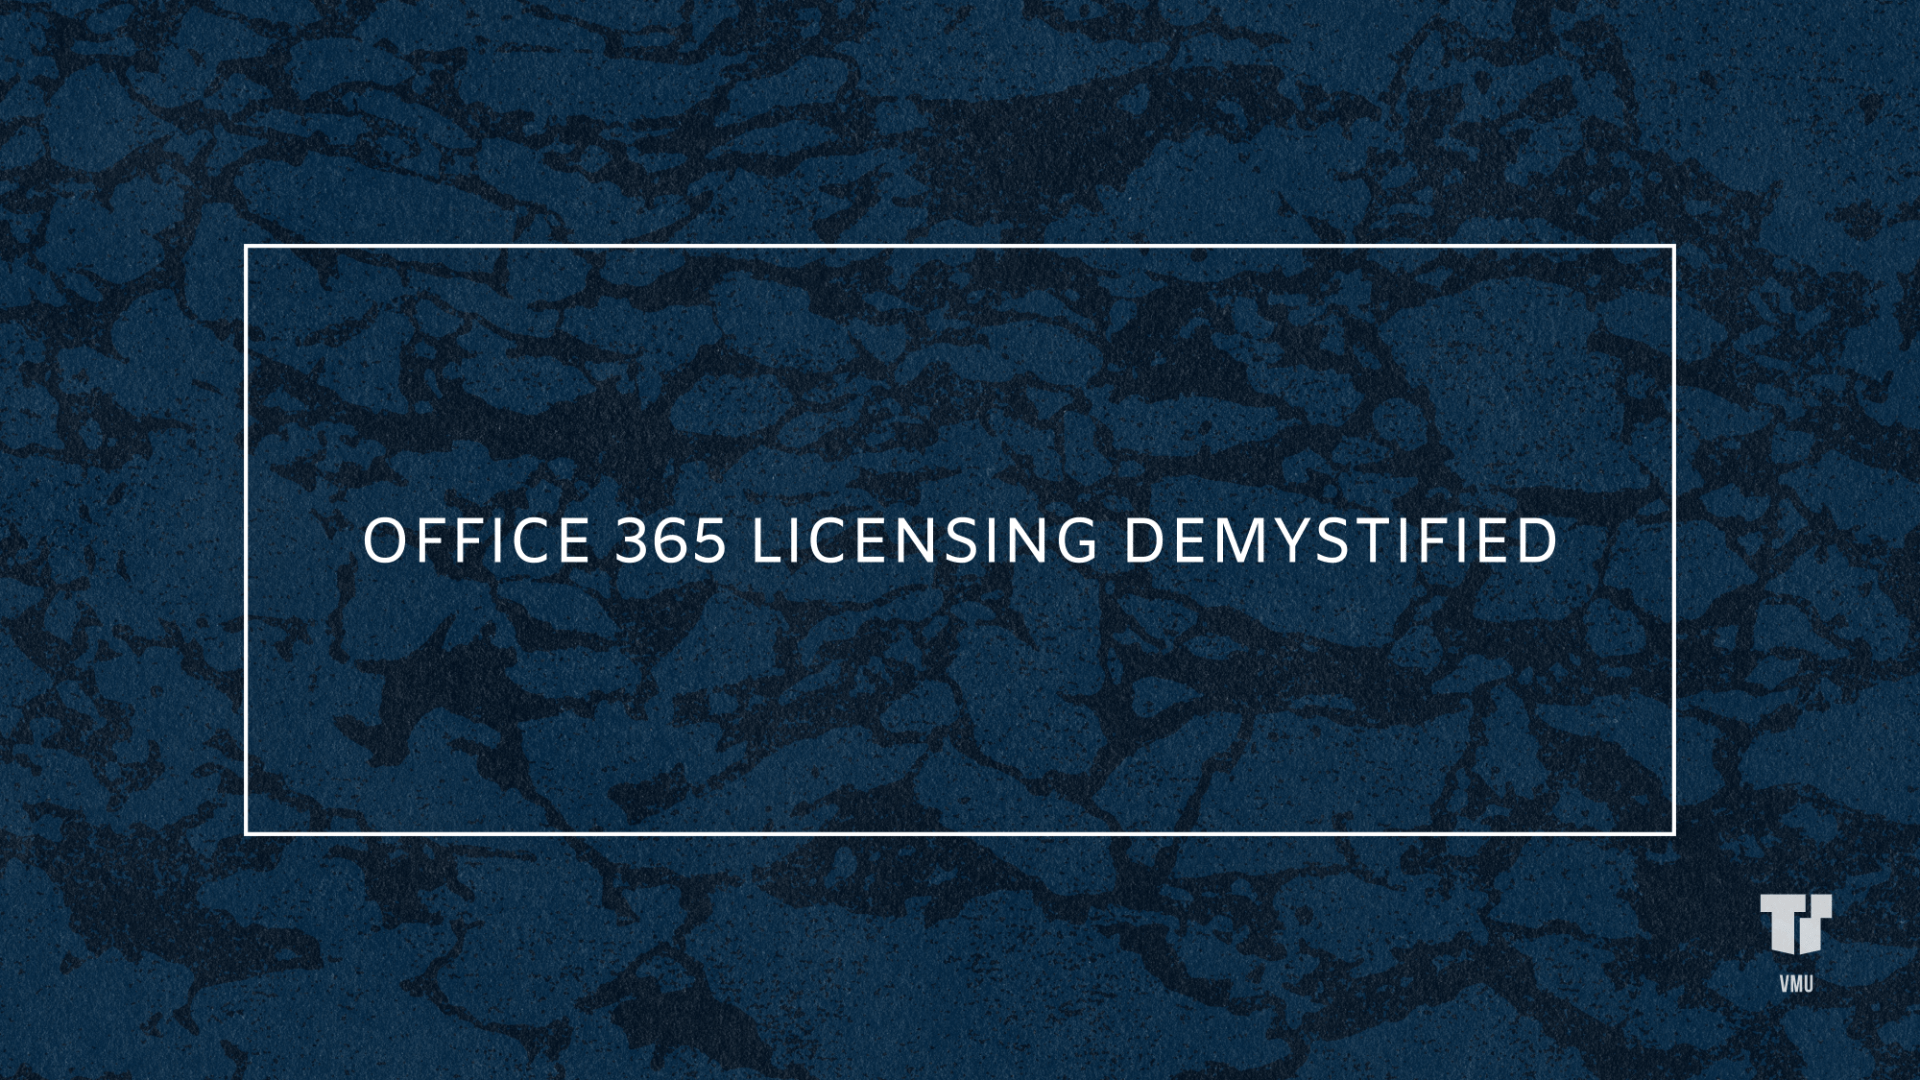 Office 365 Licensing Demystified cover image